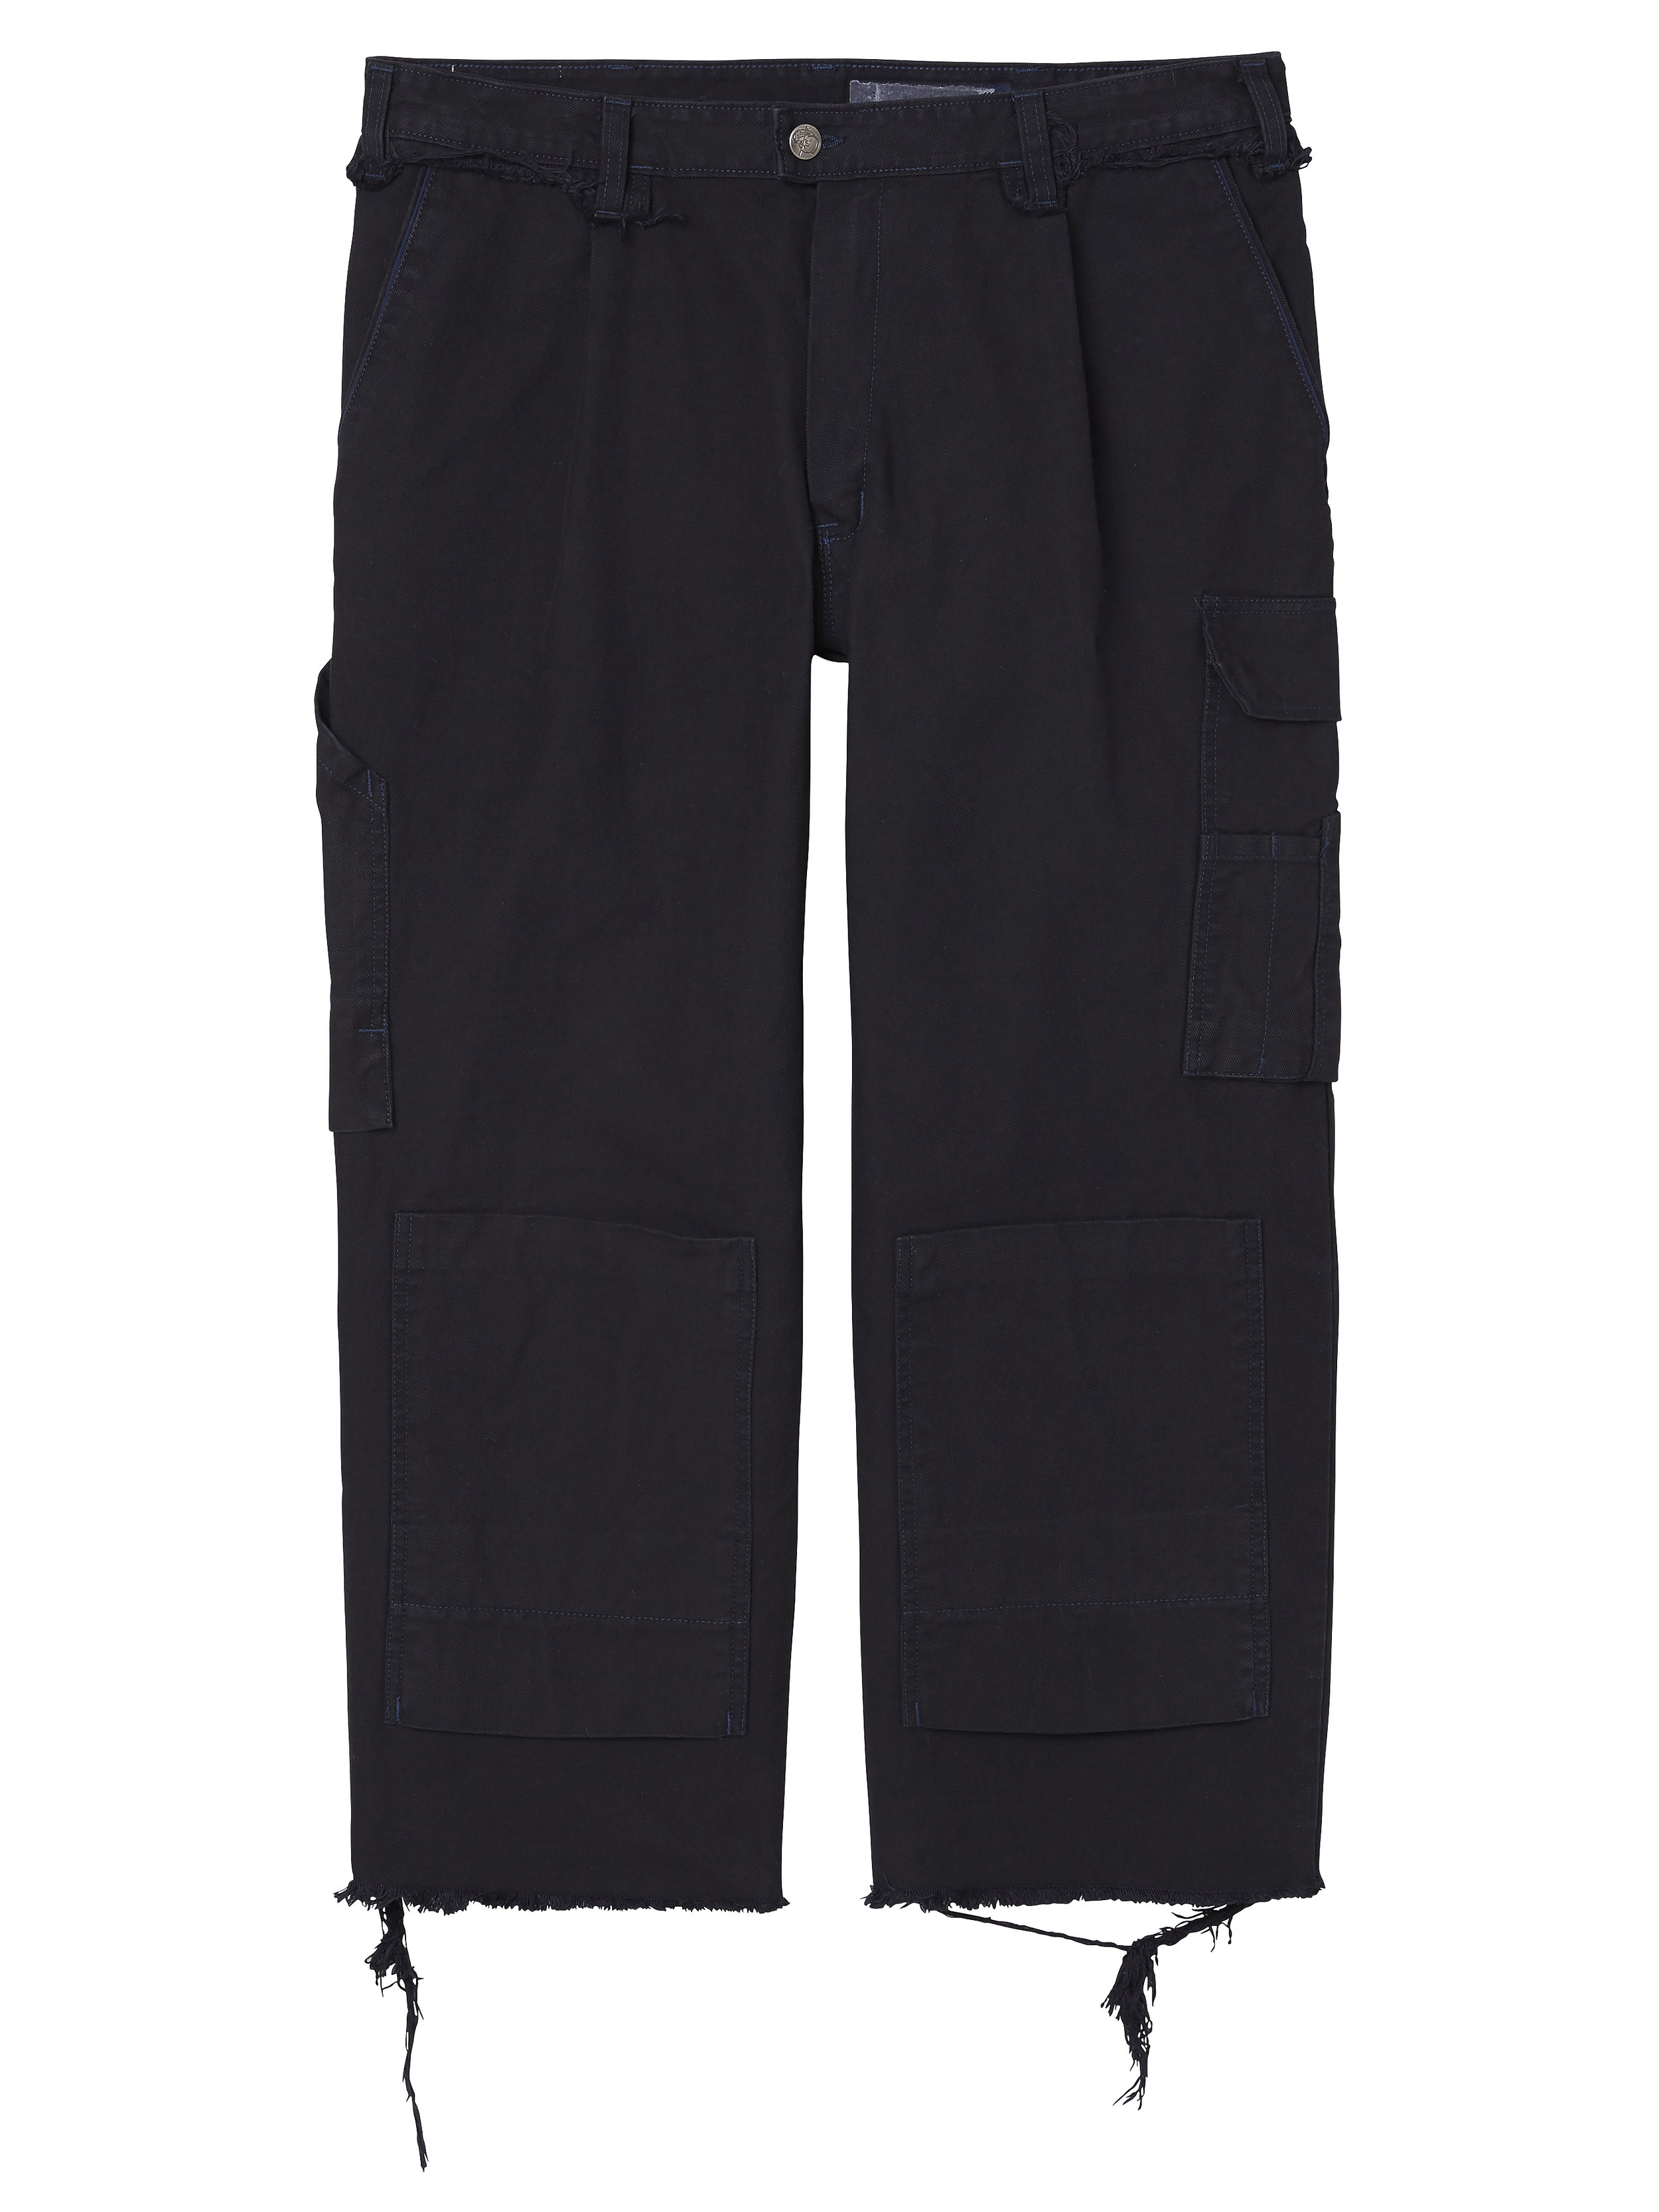 0643905_FUNCTION_TROUSERS_Overdyed_black.jpg